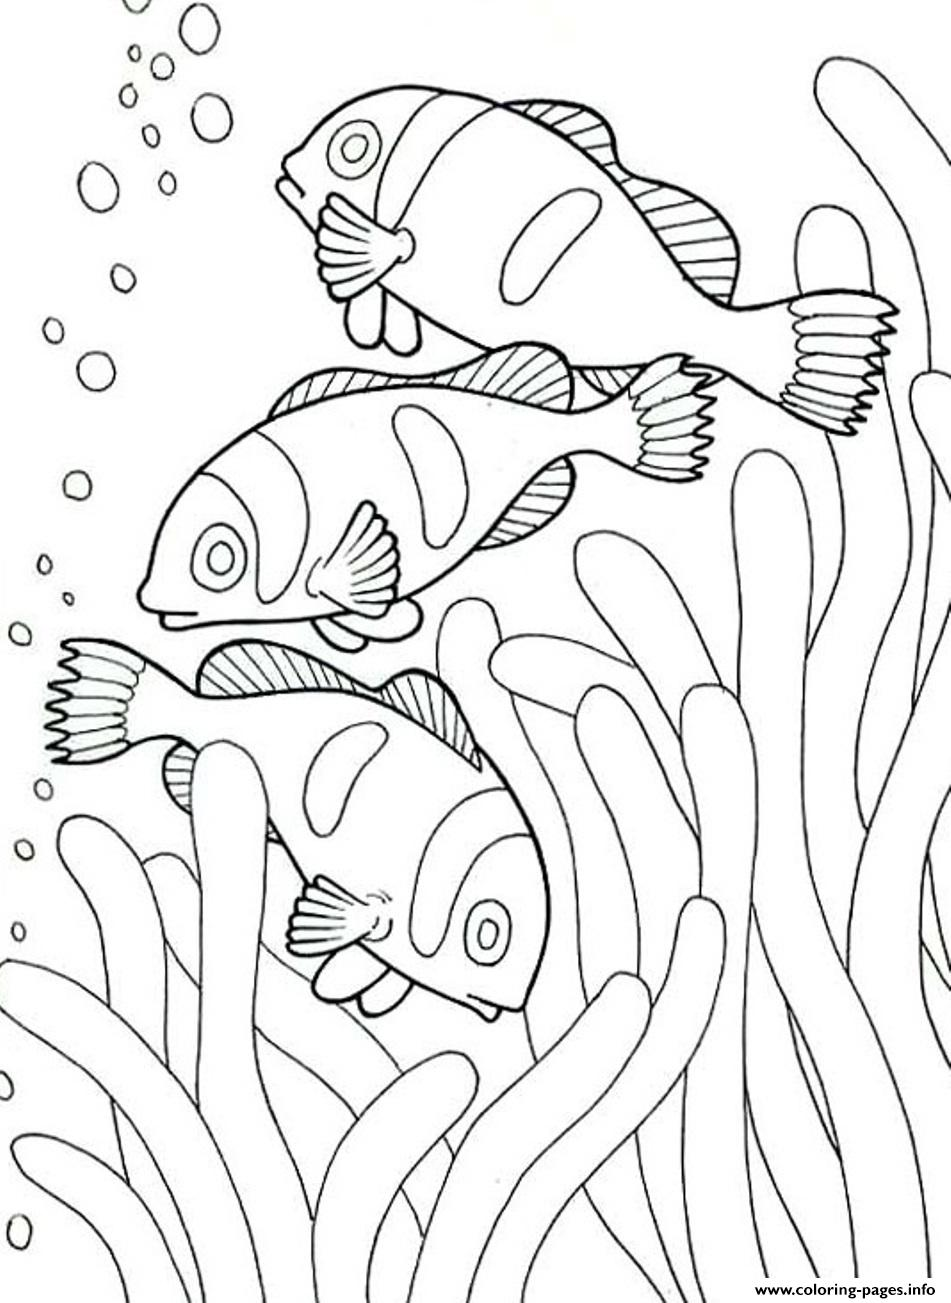 marine animals coloring pages-#32